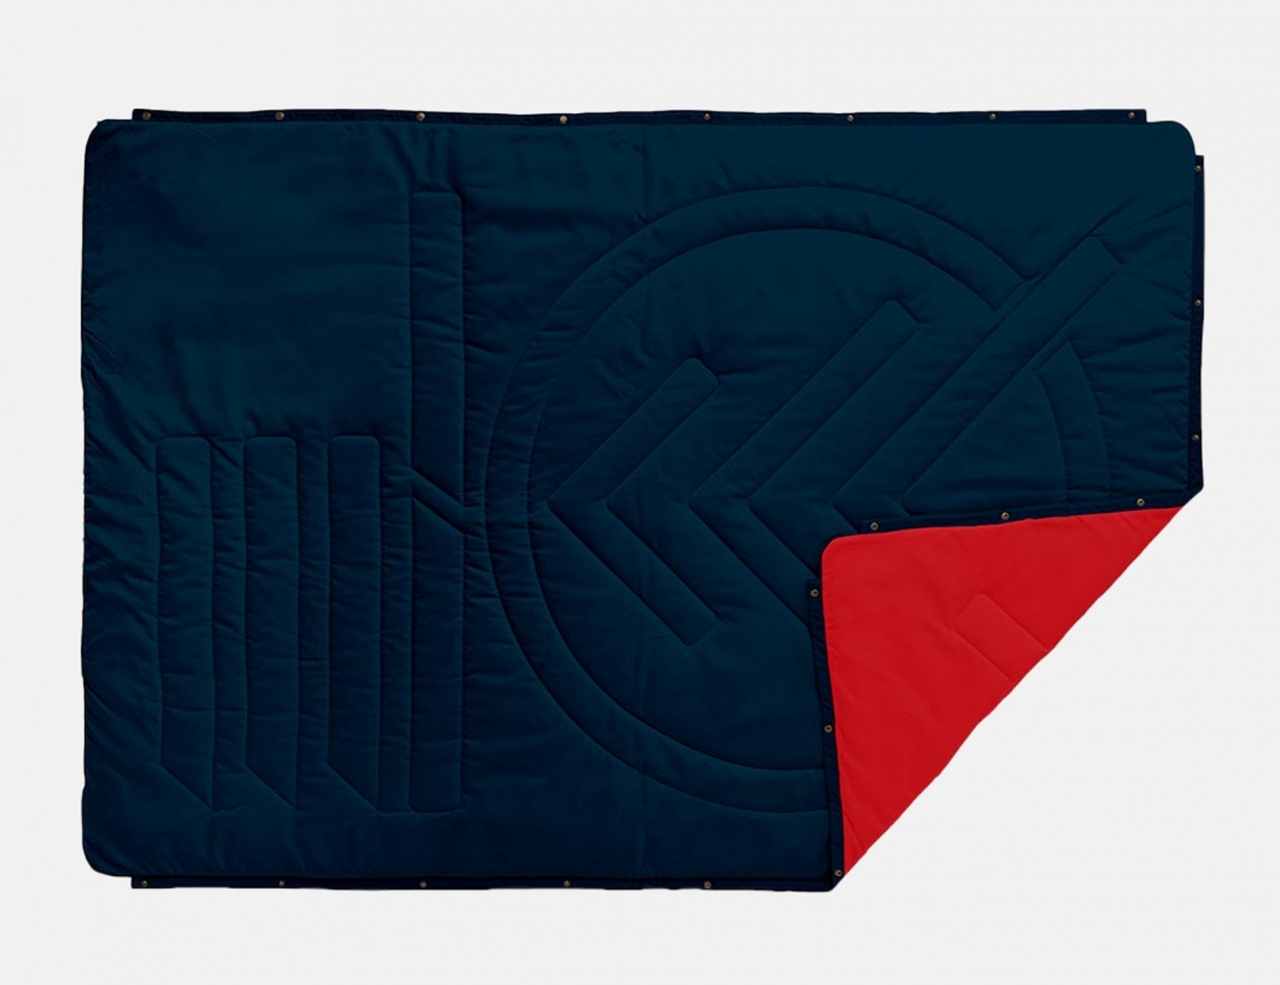 Voited Pillow Blanket - Ocean Navy / Sunset Red